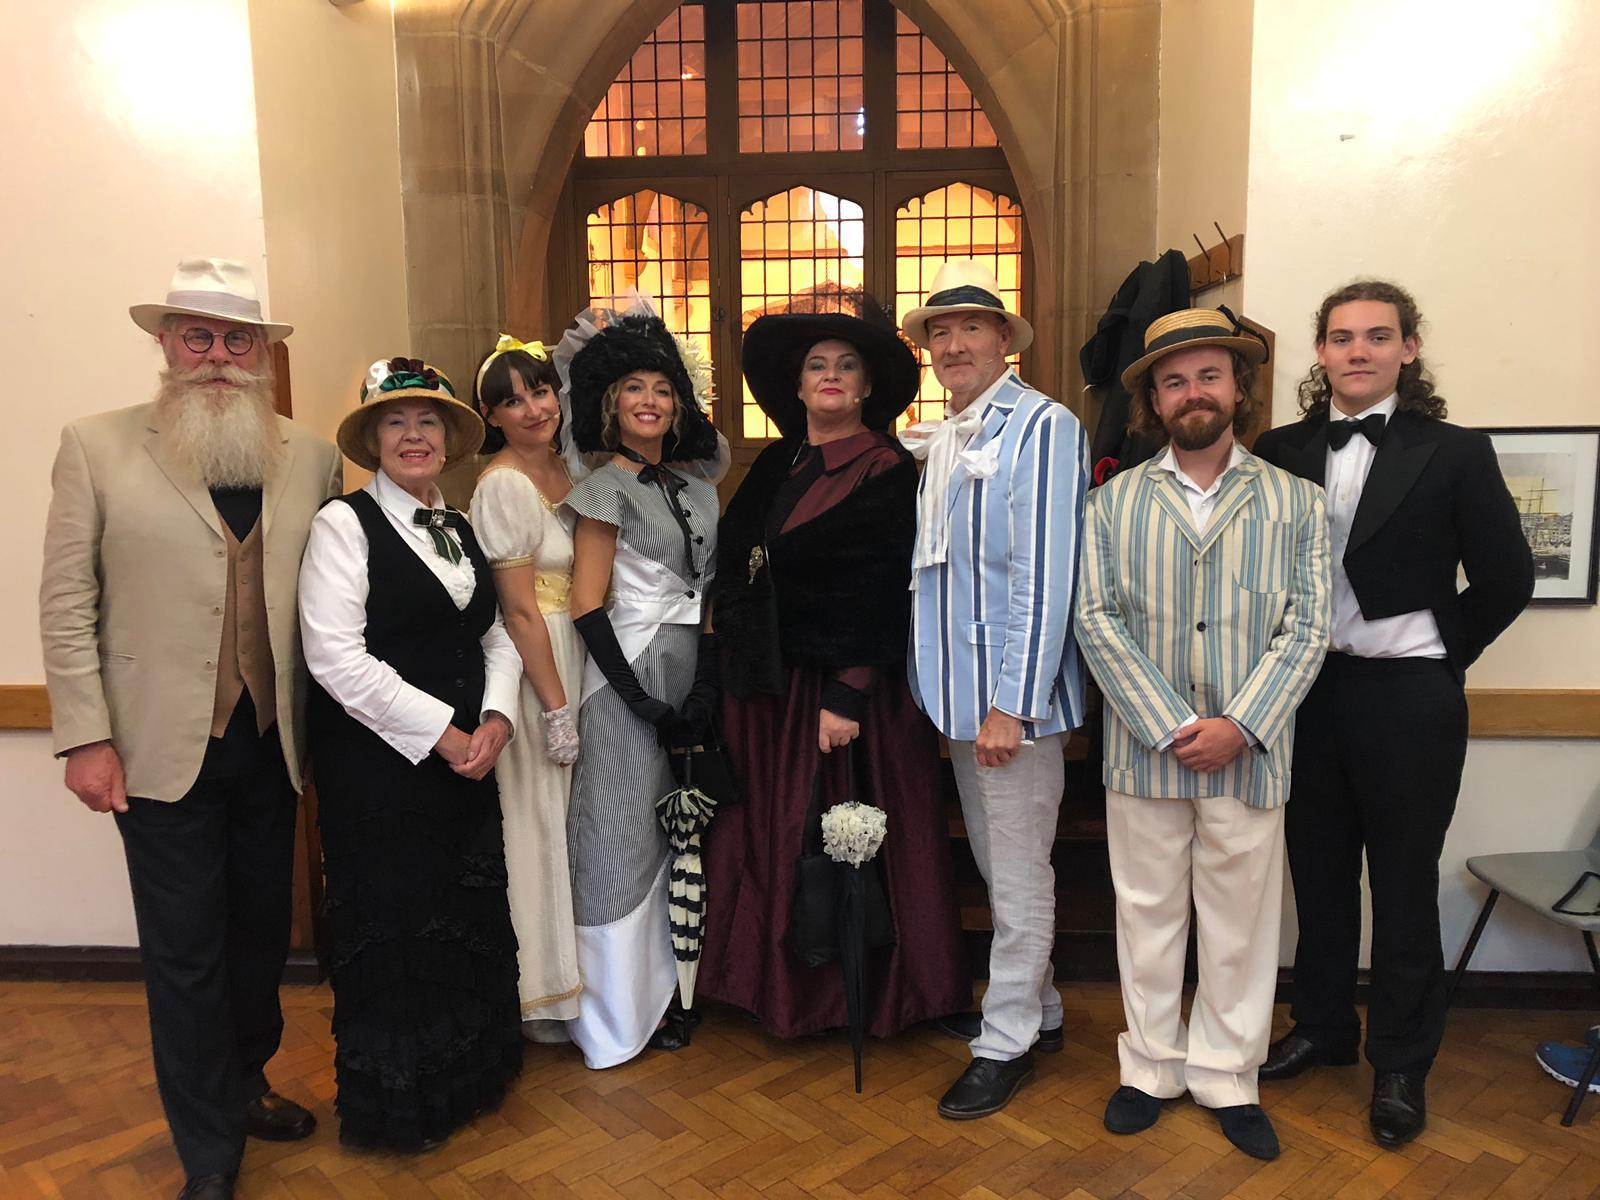 REVIEW: The Importance of Being Earnest from Liverpool Parish Church Theatre Company